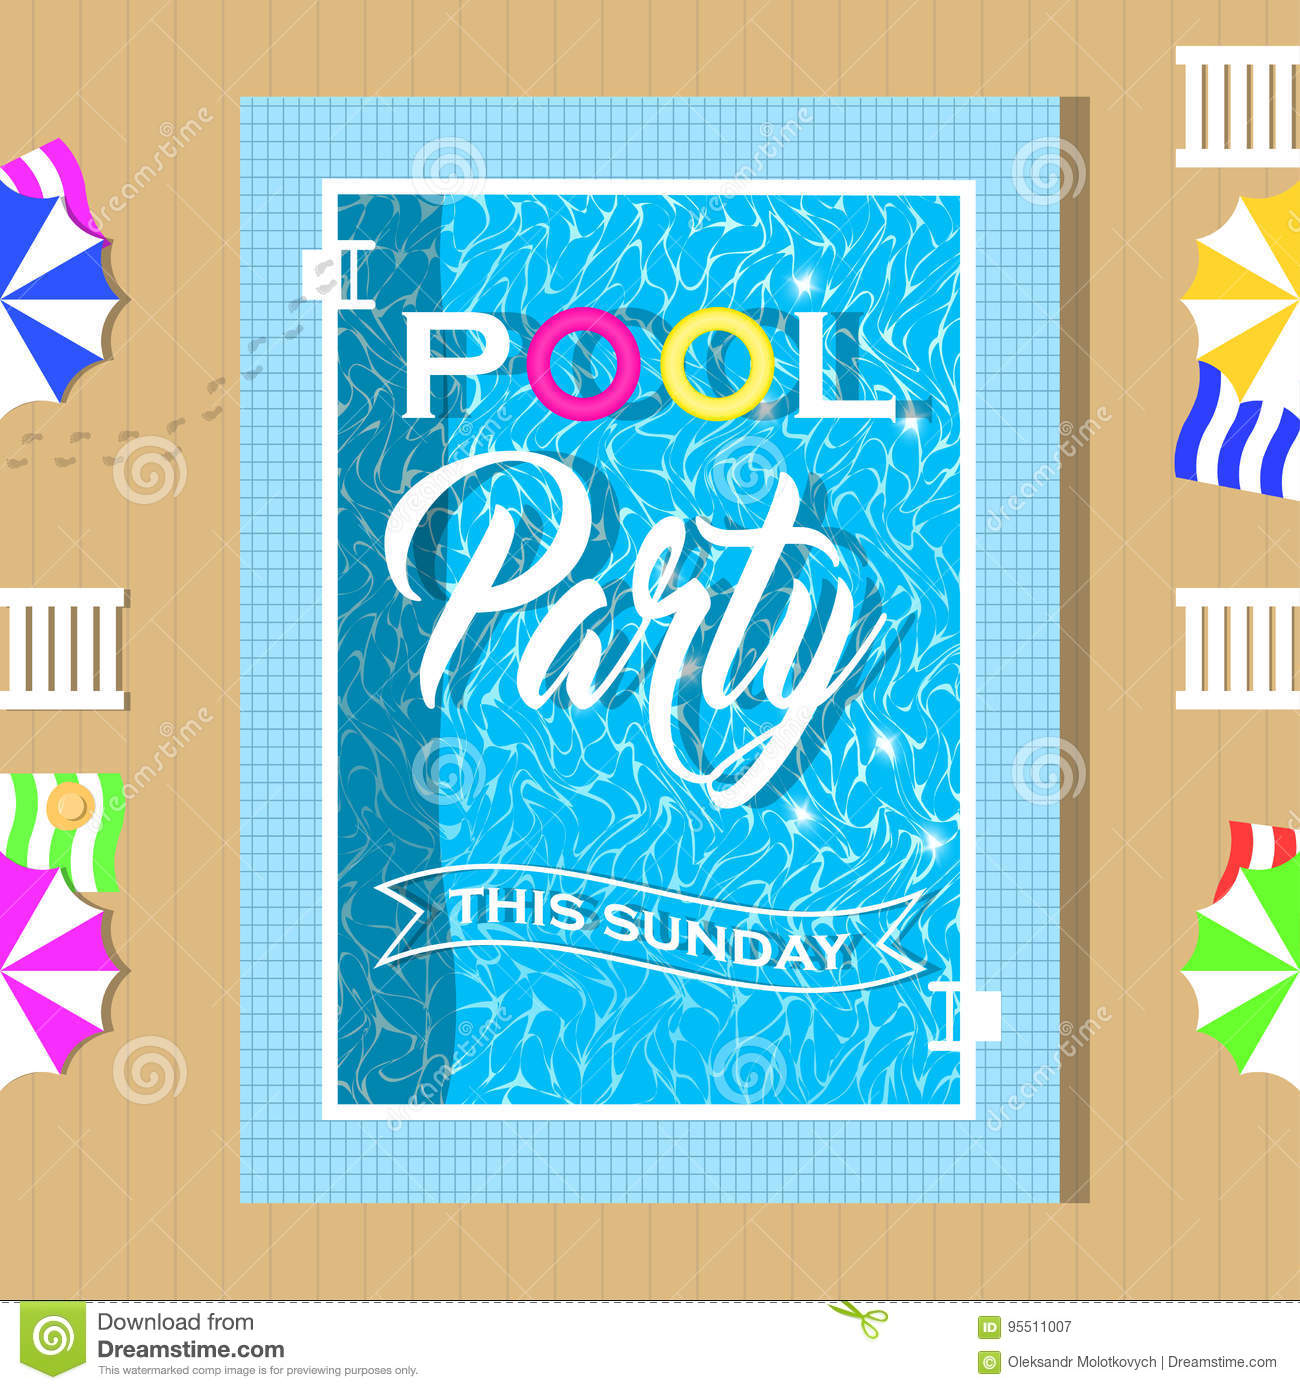 Pool party invitation design template for flyer and for Pool design templates